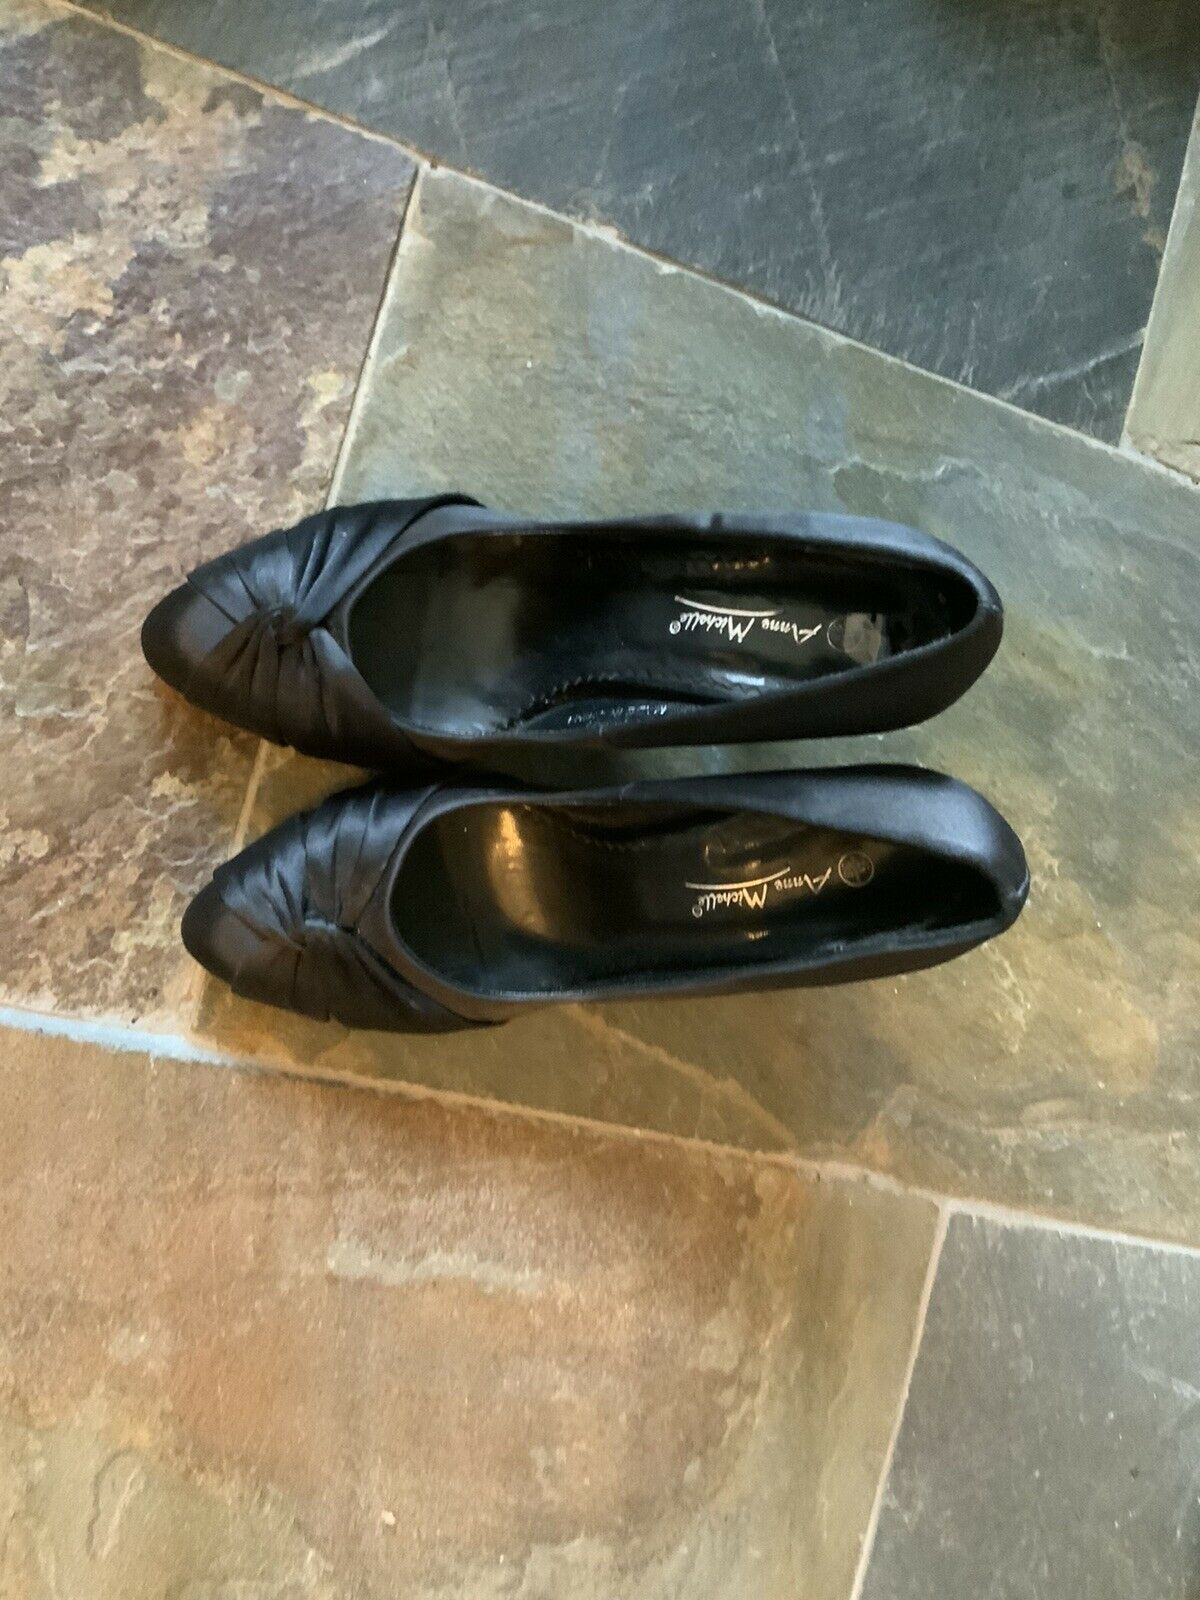 Womens Anne Michelle Black Satin Heels Ht10cms Suitable For Weddings/evening 5.5